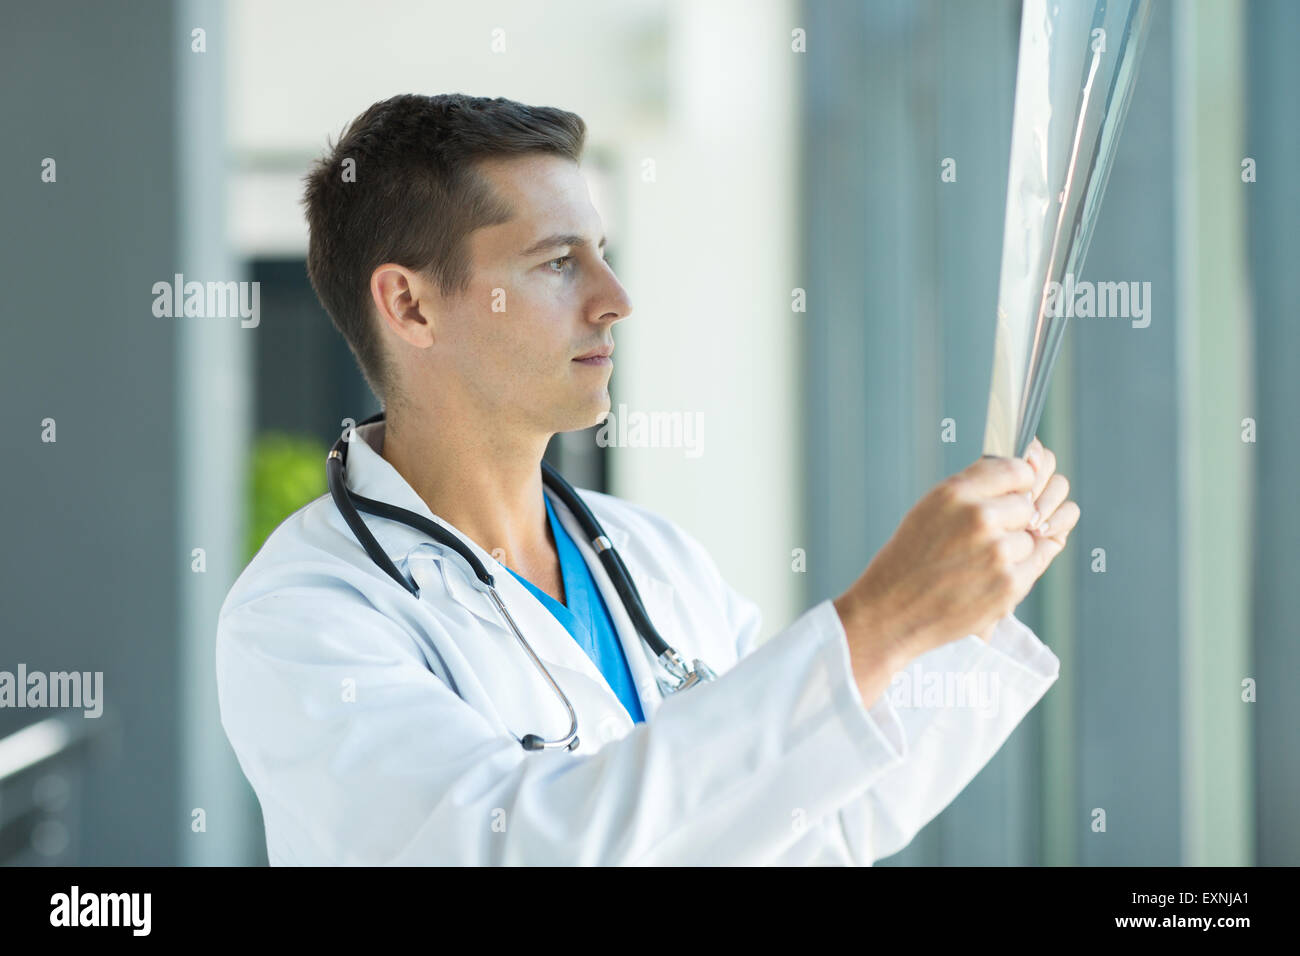 young doctor studying patient's x ray at hospital - Stock Image